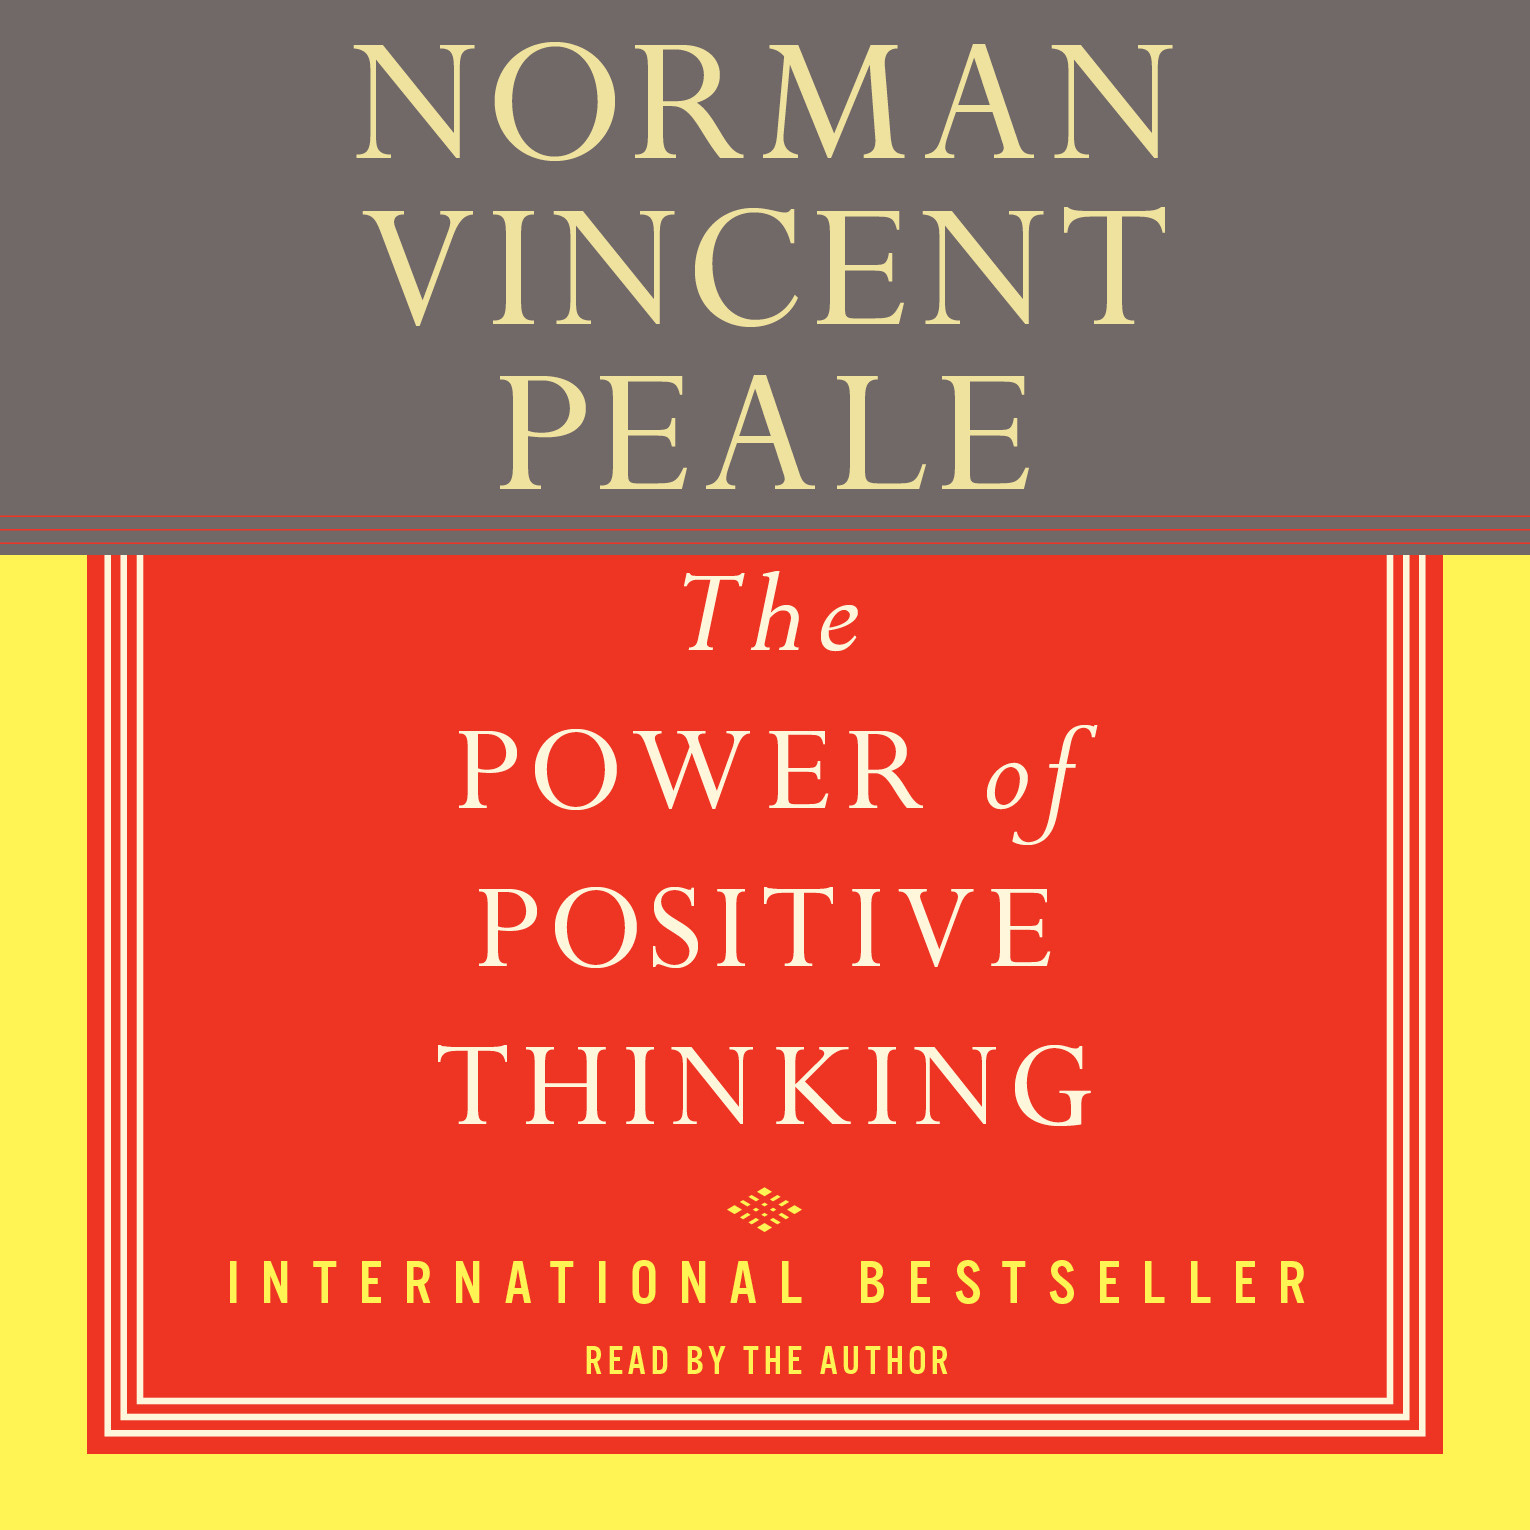 Printable The Power Of Positive Thinking The: A Practical Guide To Mastering The Problems Of Everyday Living Audiobook Cover Art